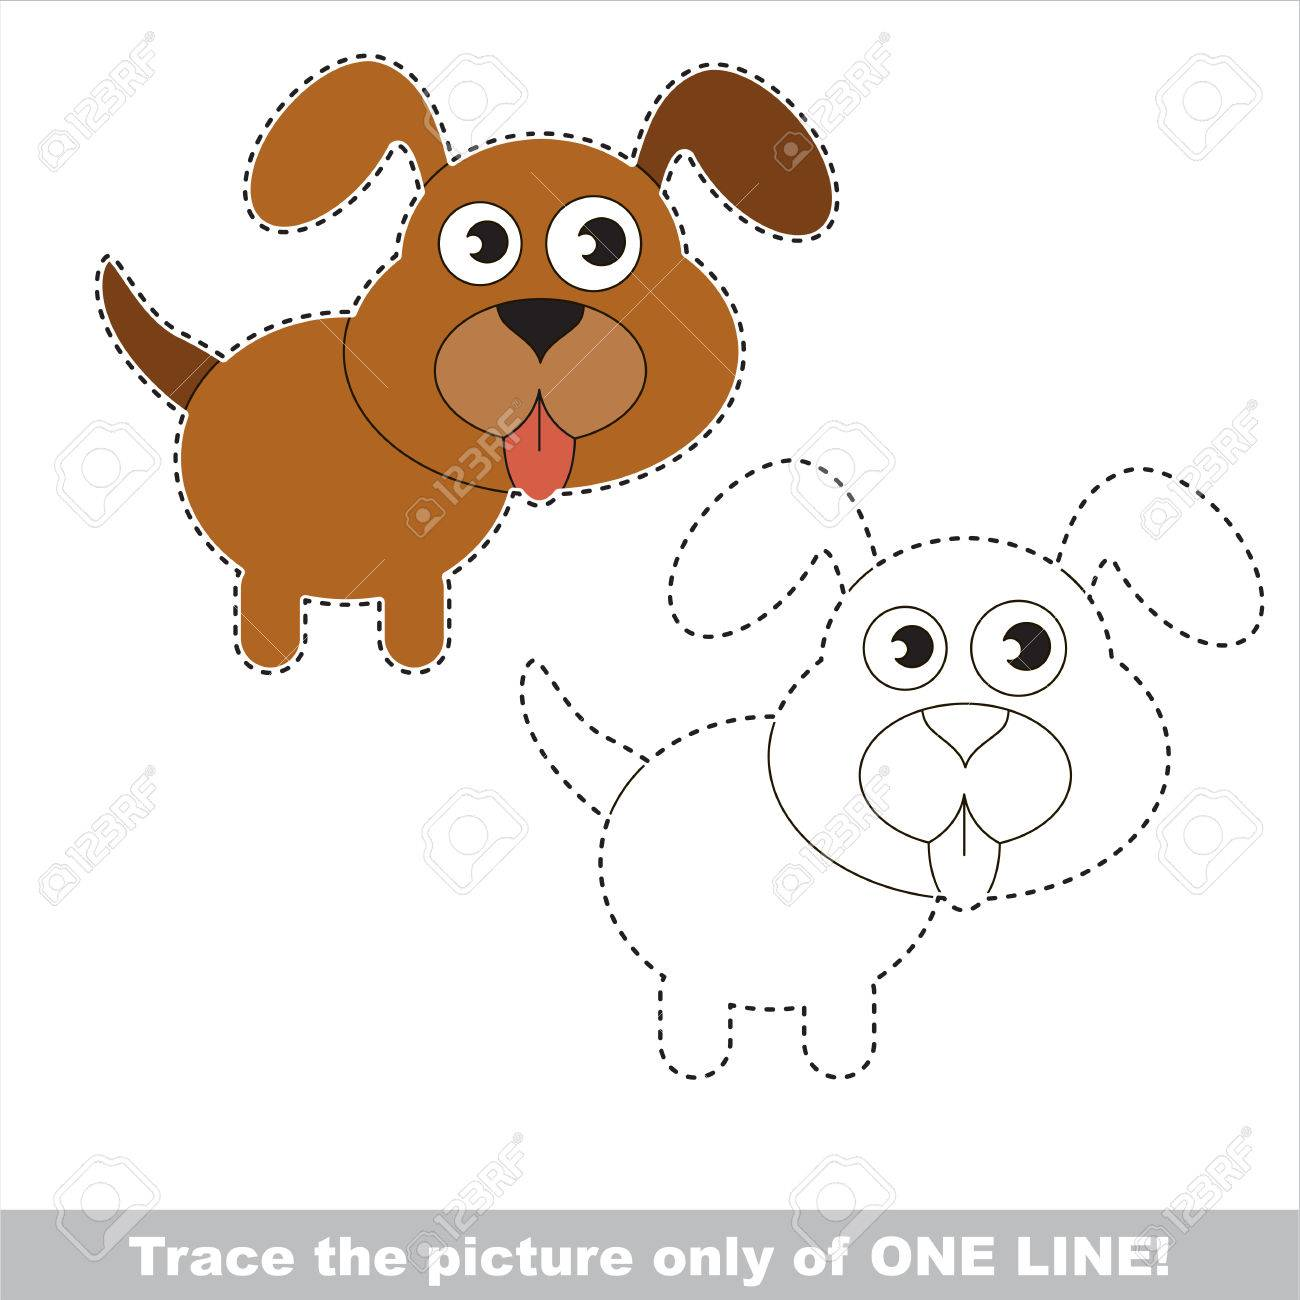 Easy To Trace Pictures For Kids